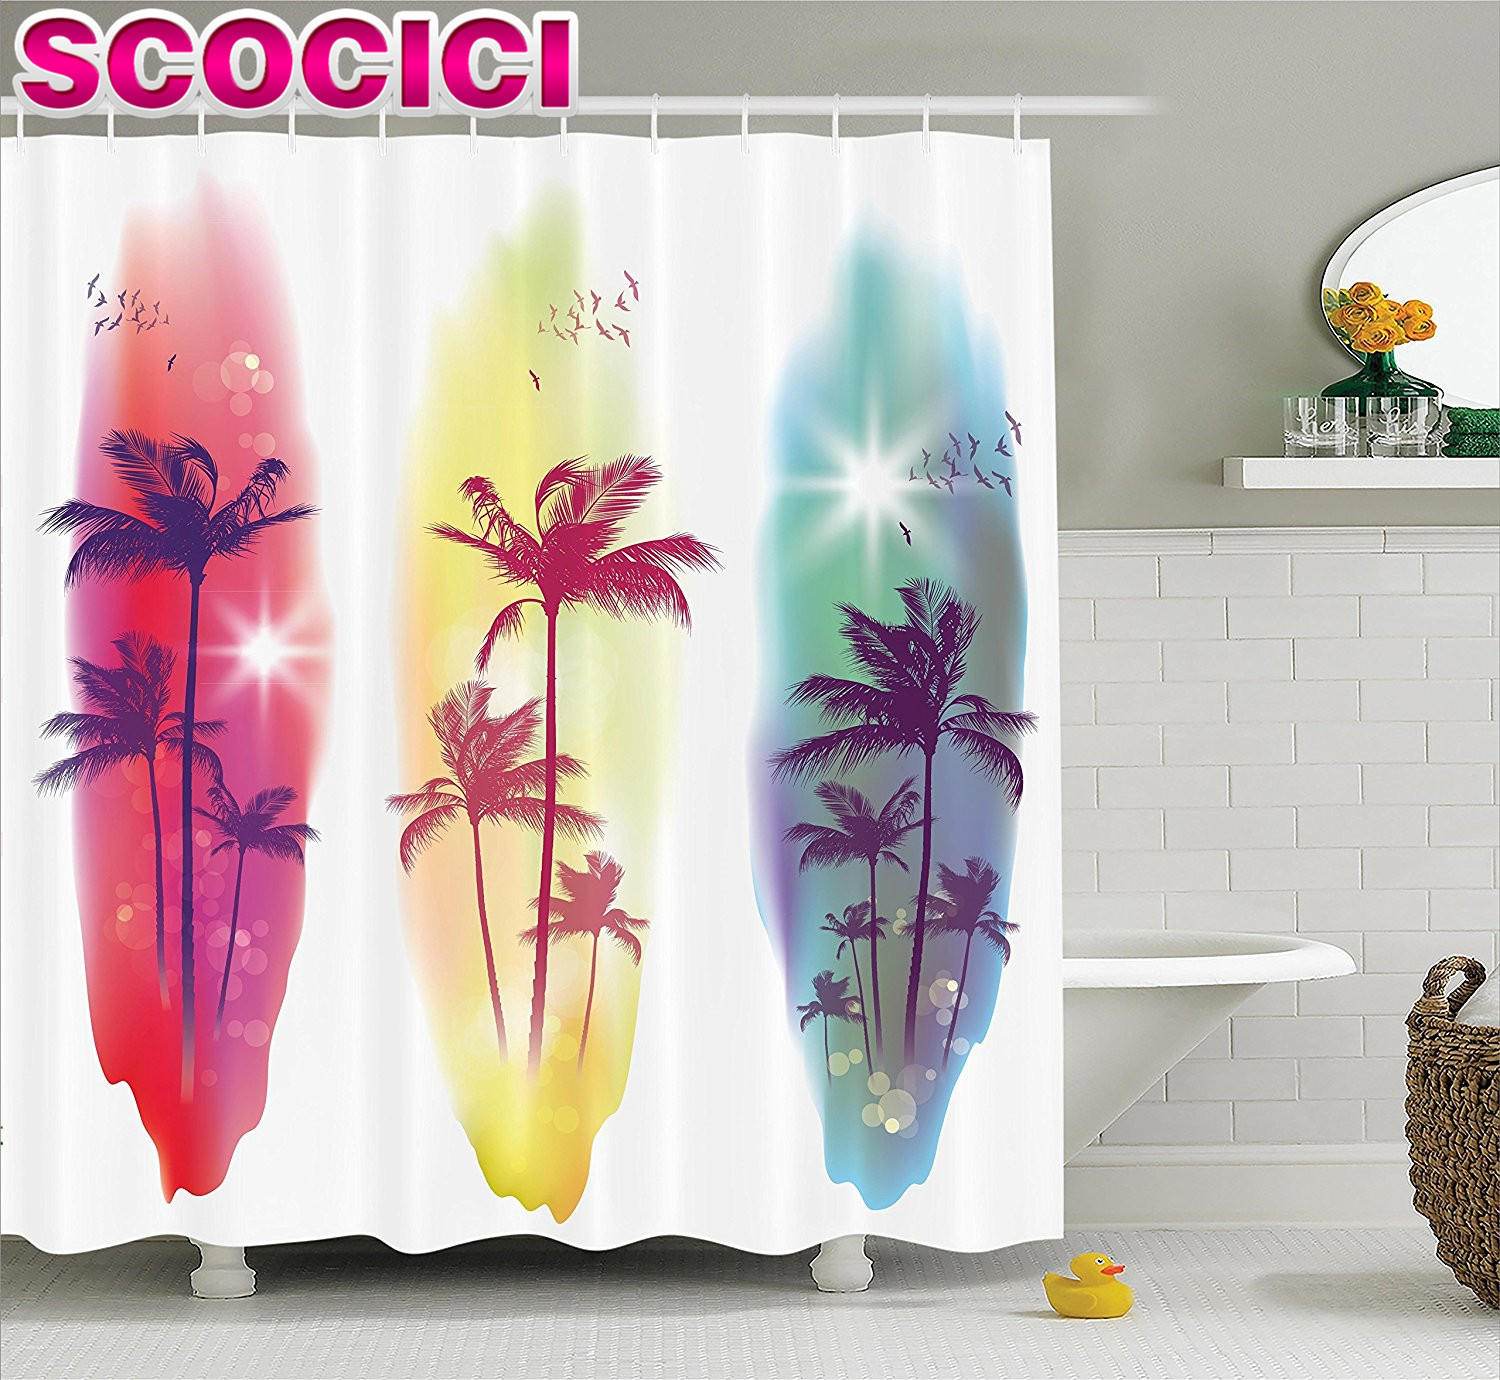 tropical decor shower curtain set palm trees birds seagulls pattern silhouette on surfing boards seascape theme bathroom accesso